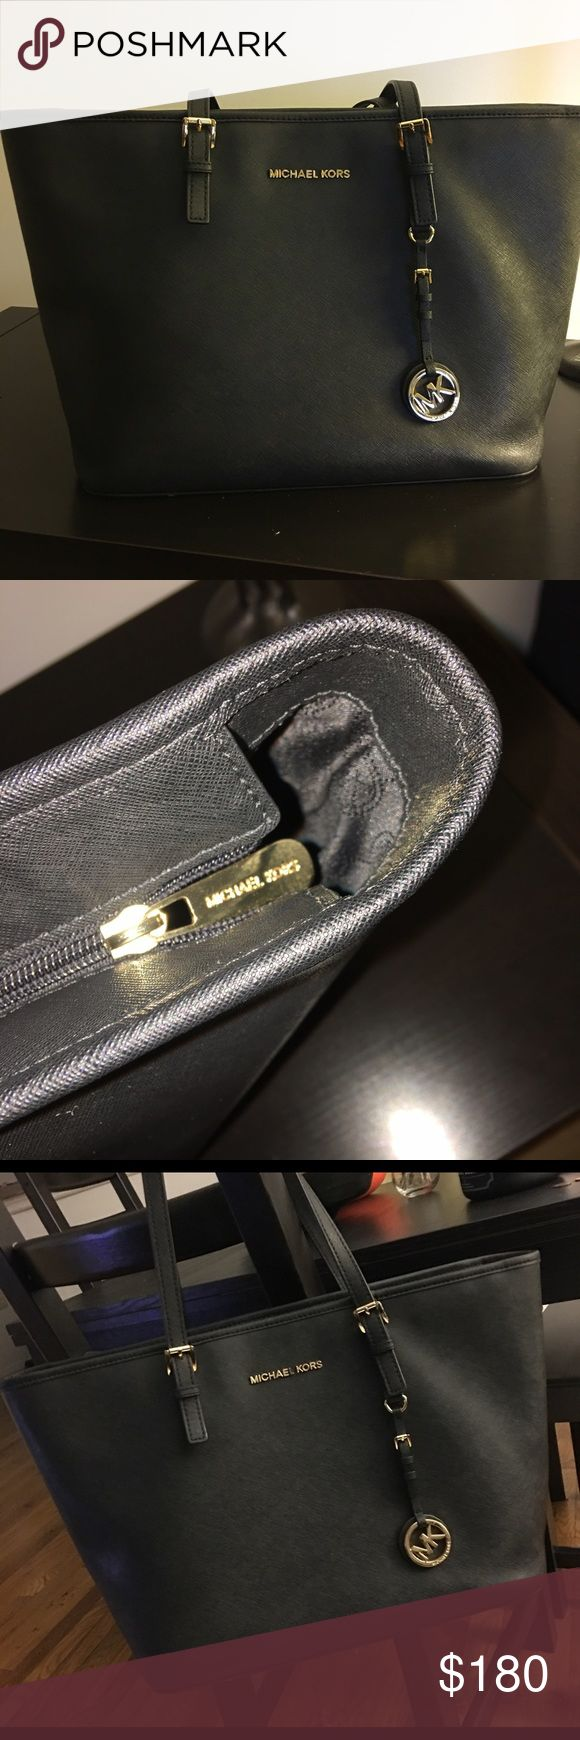 Michael Kors Tote (Authentic) -Gently worn Saffiano Leather Michael Kors Tote, interior features 1 zip pocket, 3 slip pockets, 1 cell phone pocket and 1 key finder. Zip closure, gold toned hardware and logo charm. Less than a year old. Promise you will not be disappointed. In great condition! Michael Kors Bags Totes